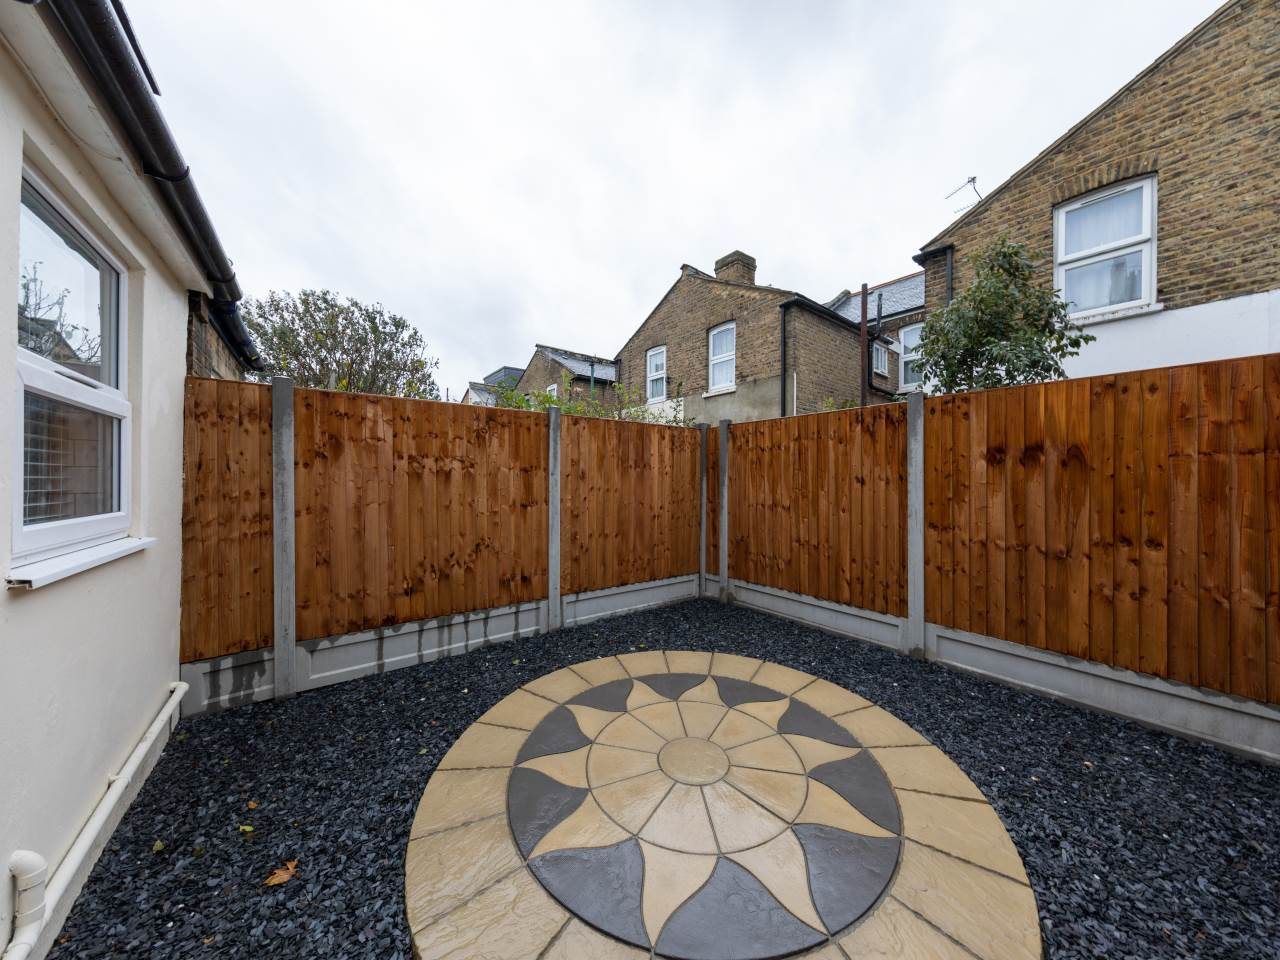 3 bed house for sale in Exning Road , Canning Town  3